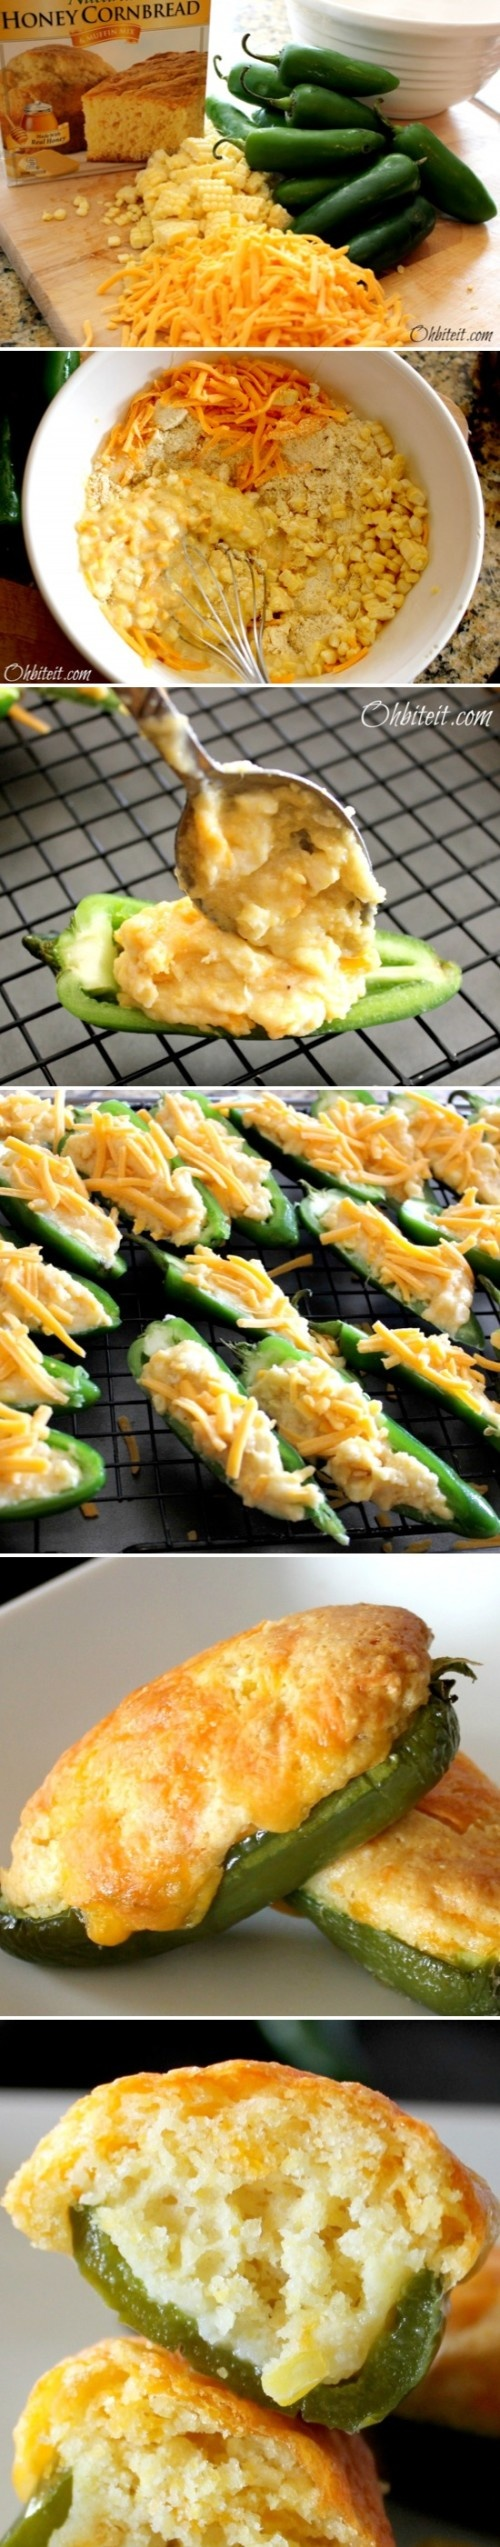 Cornbread Jalapeño Poppers. I need to bring these as an appetizer somewhere :)